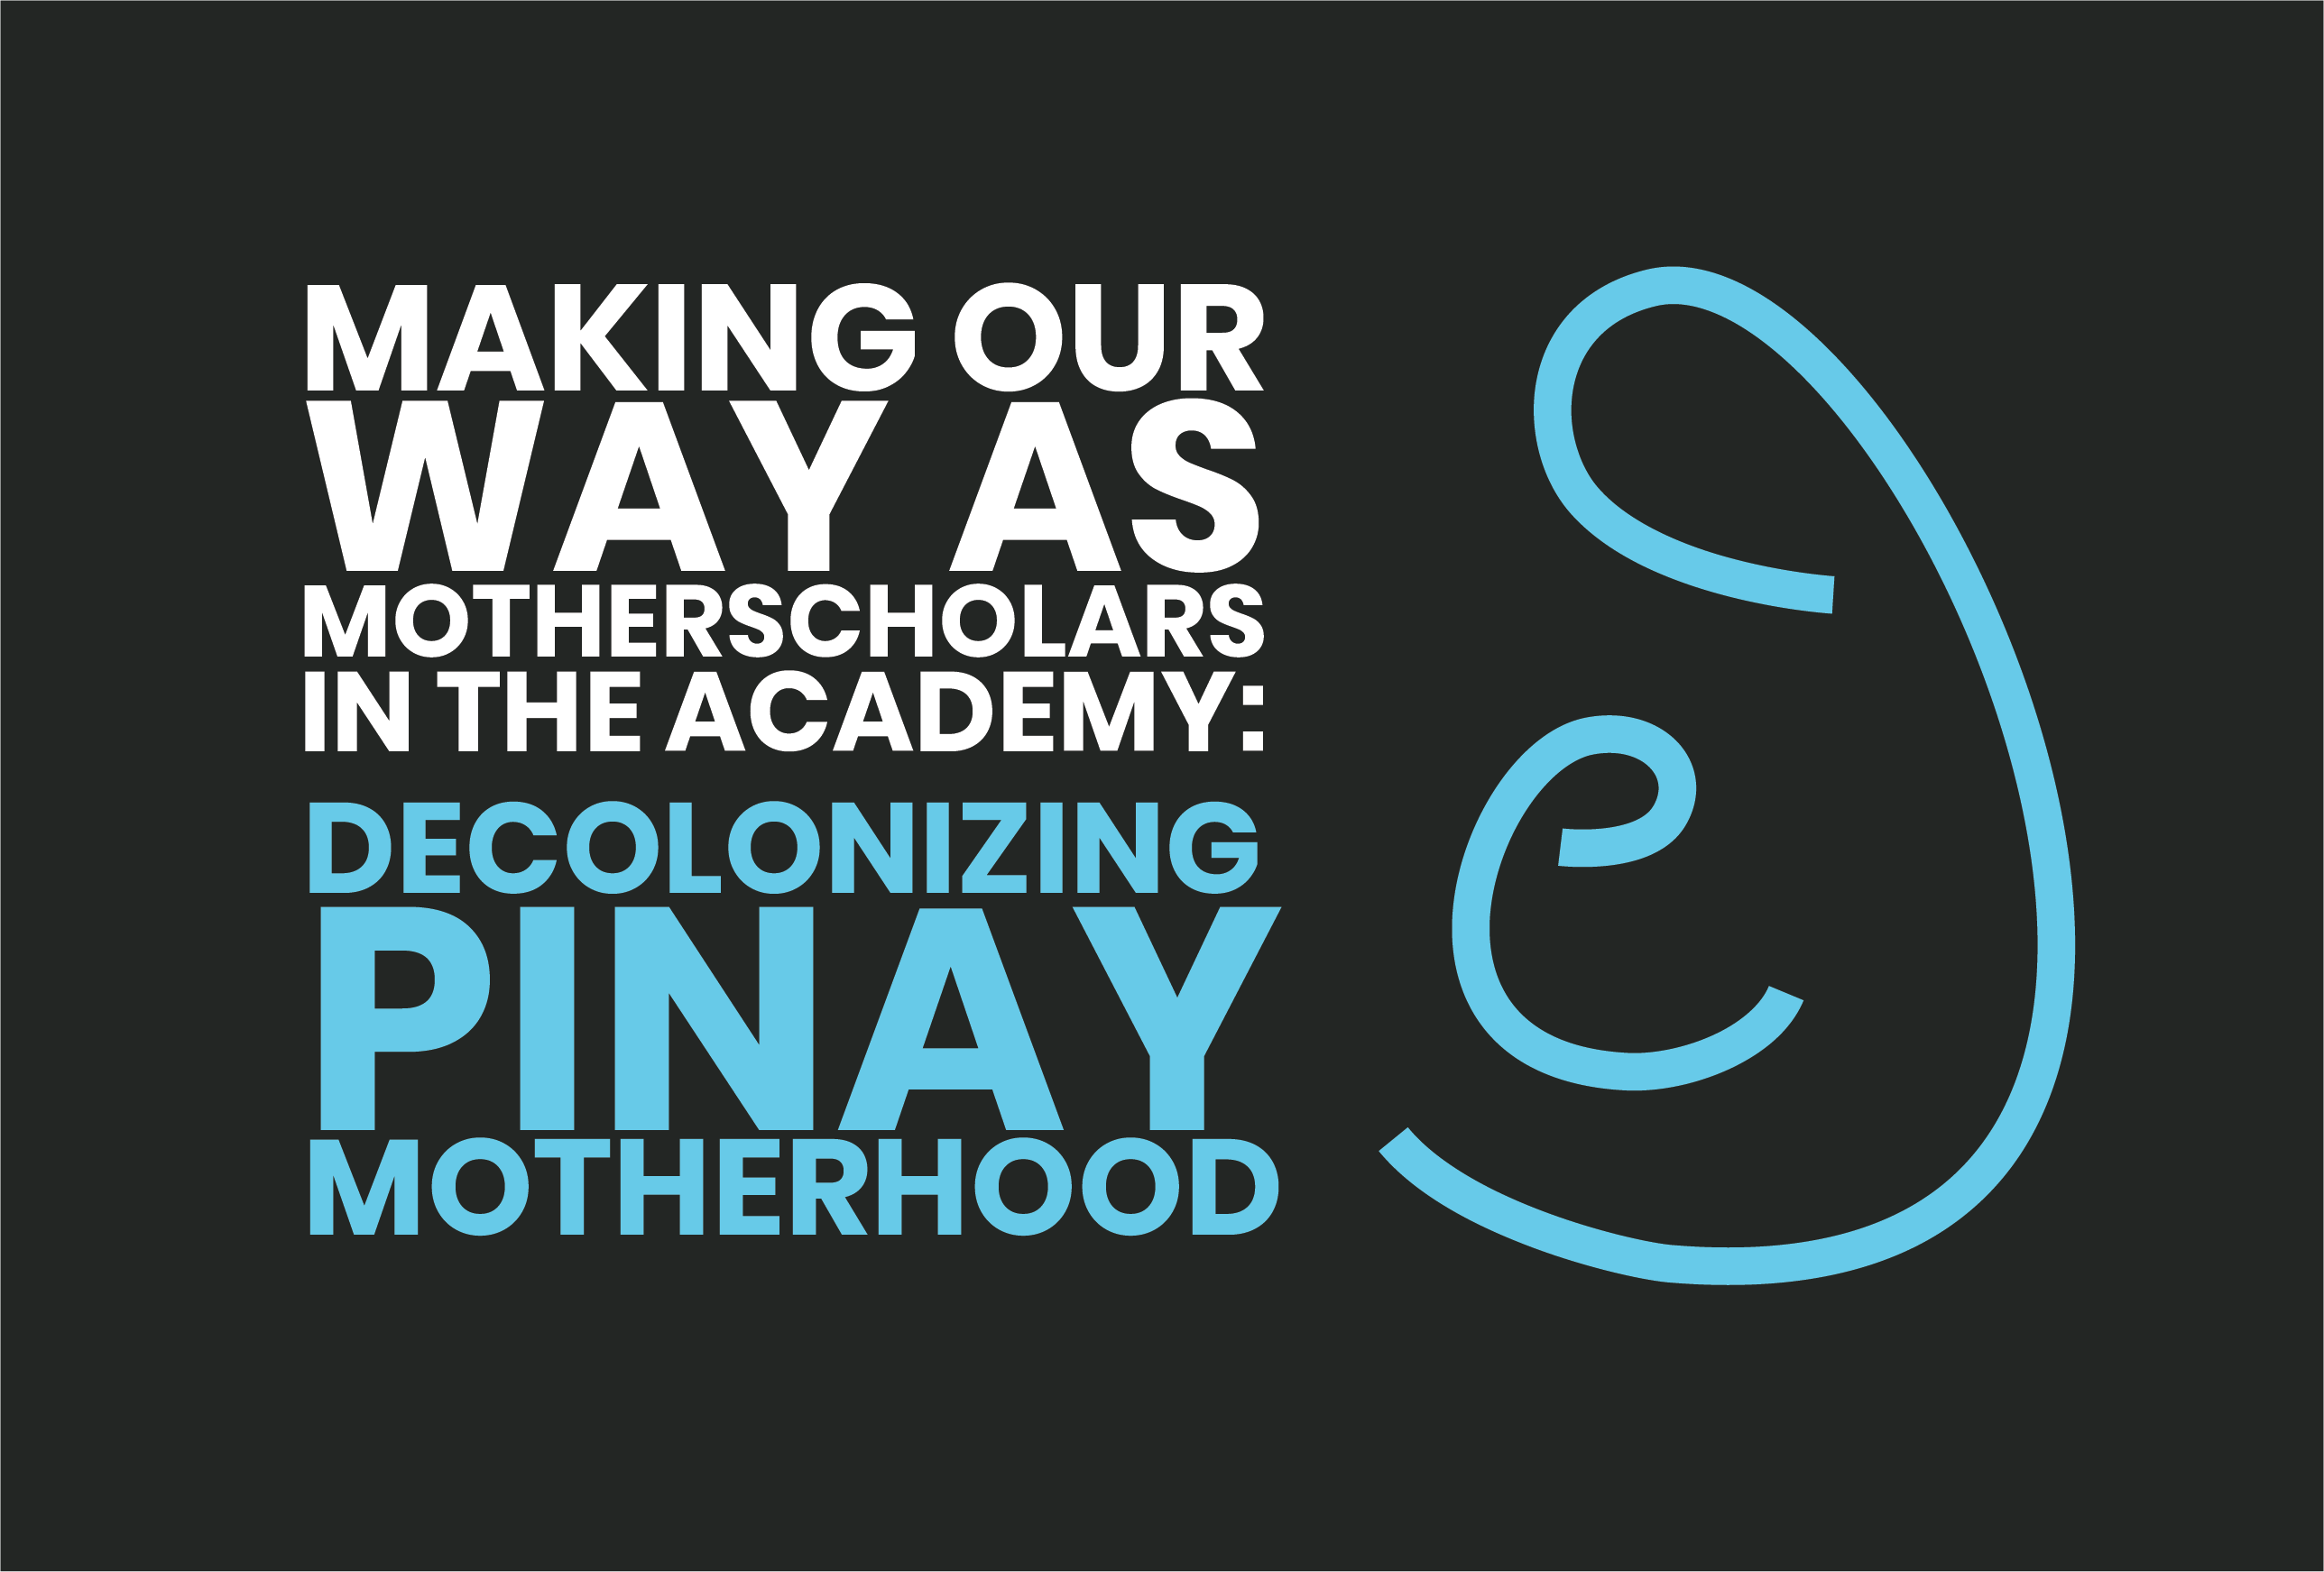 Decolonizing Pinay Motherhood